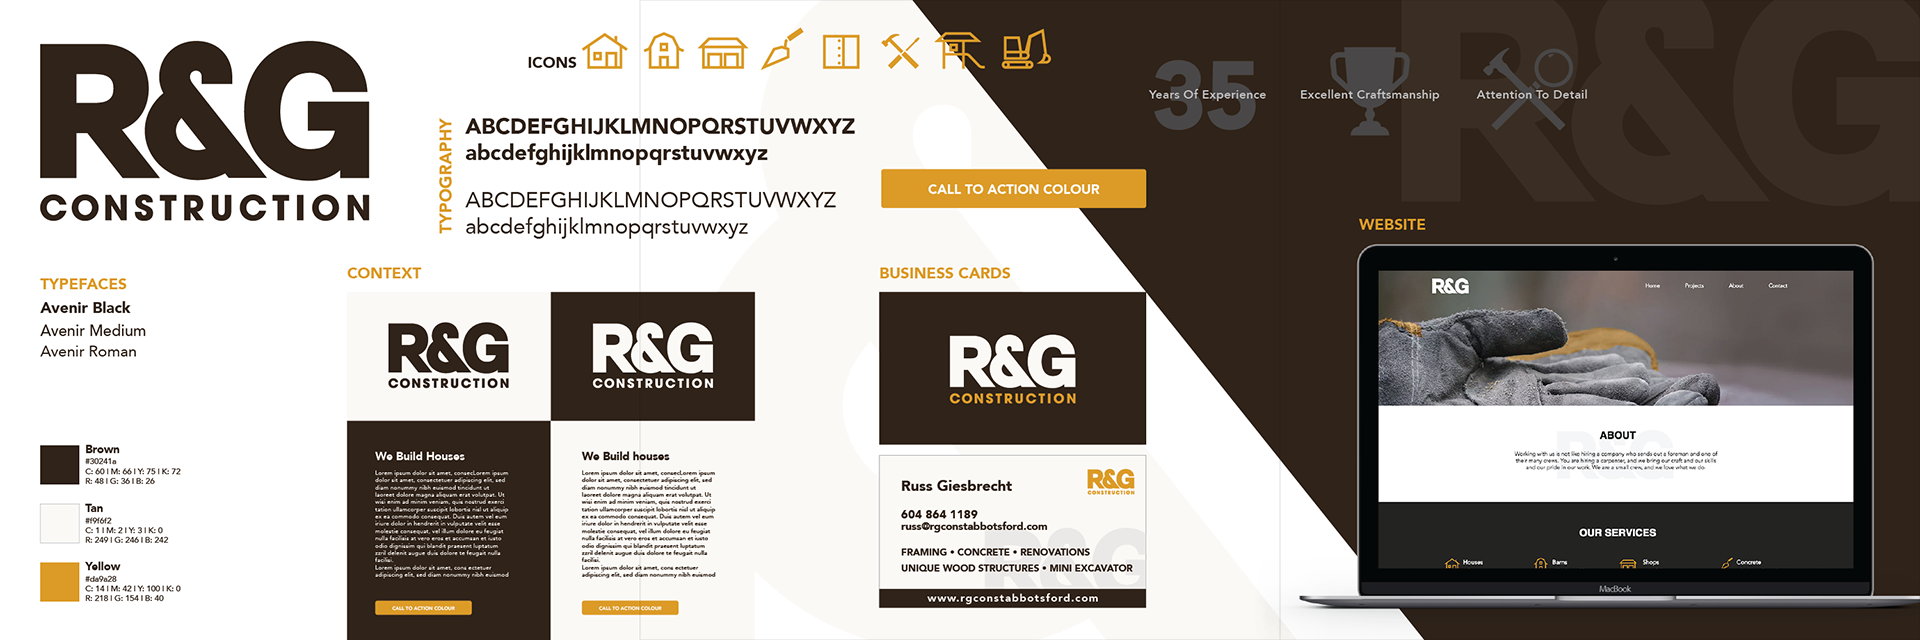 R&G - Brand Guidelines Insta-04